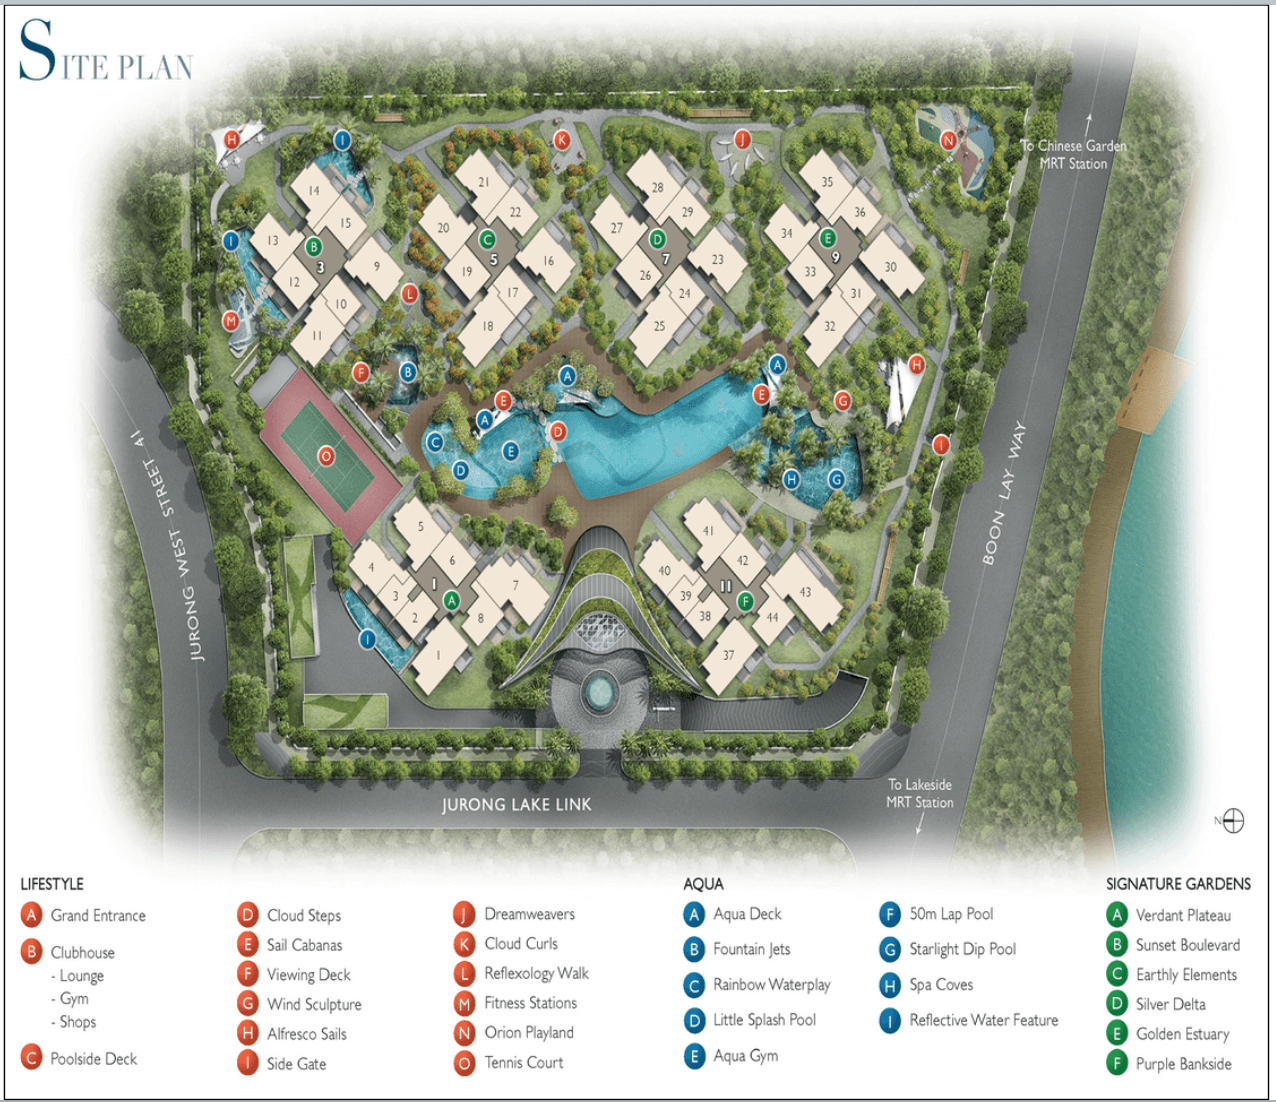 New Condo Launch - LakeVille - Site Map